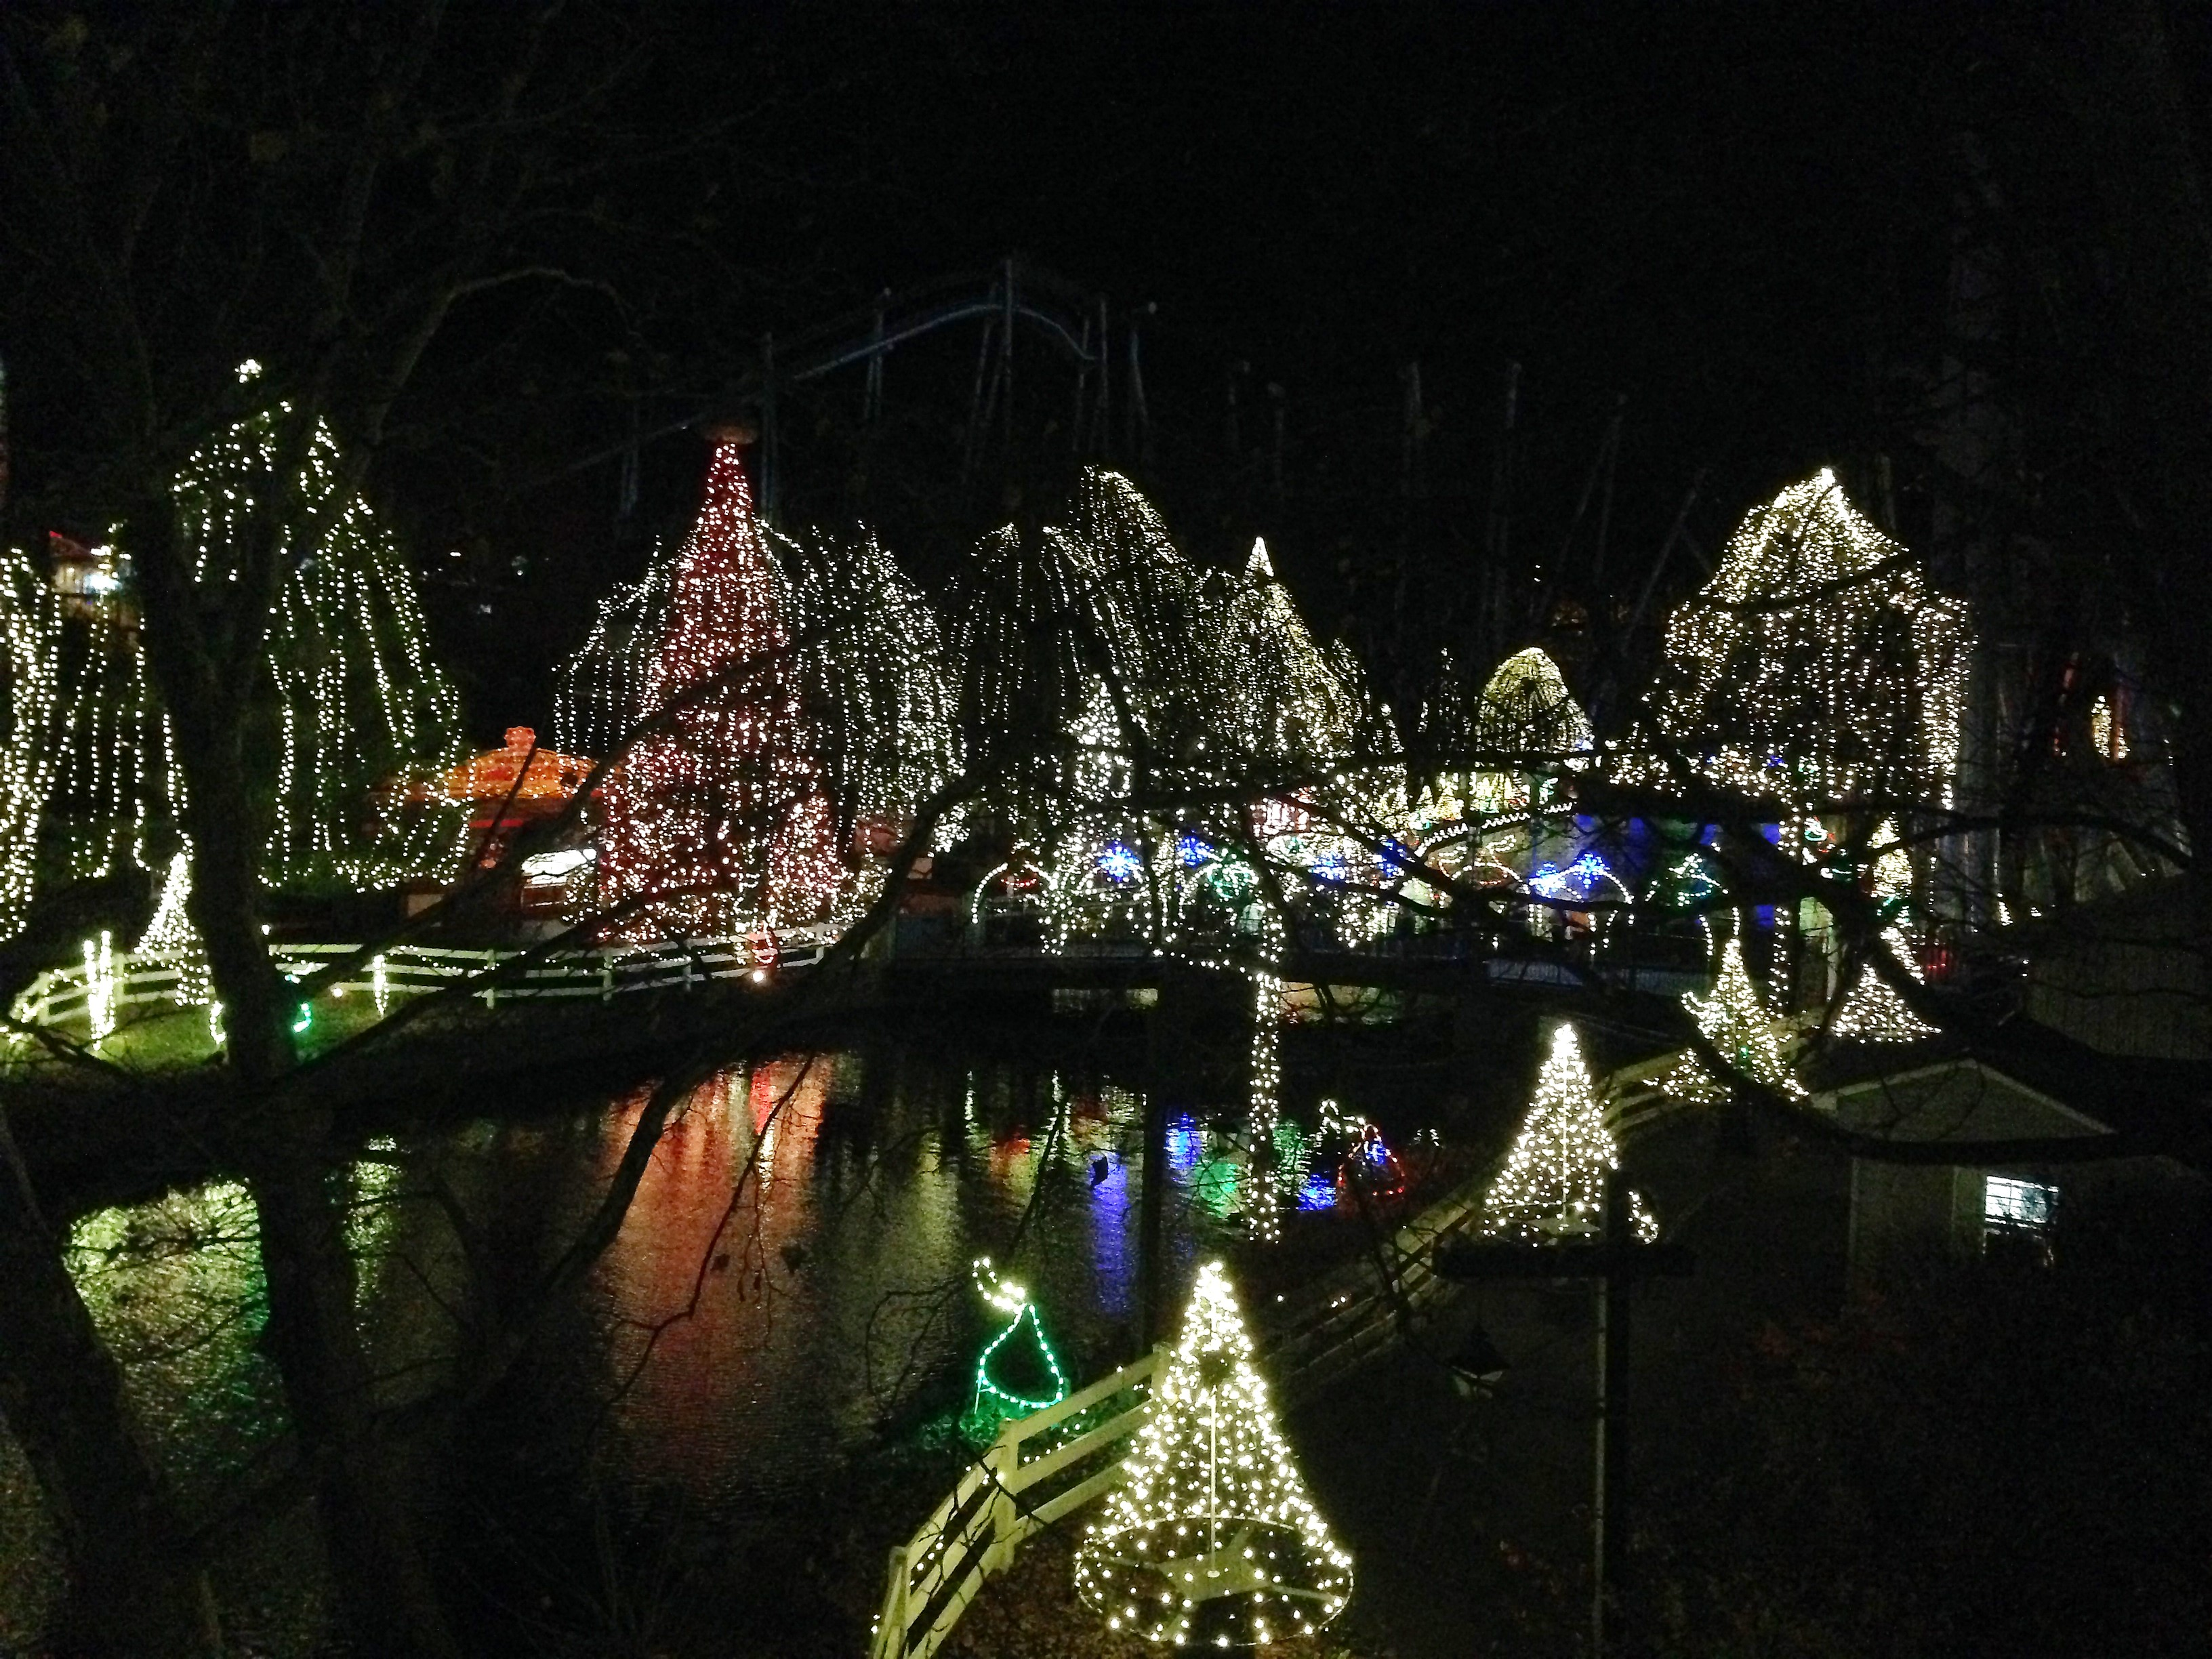 Hersheypark at Christmas - the Hollow at night.